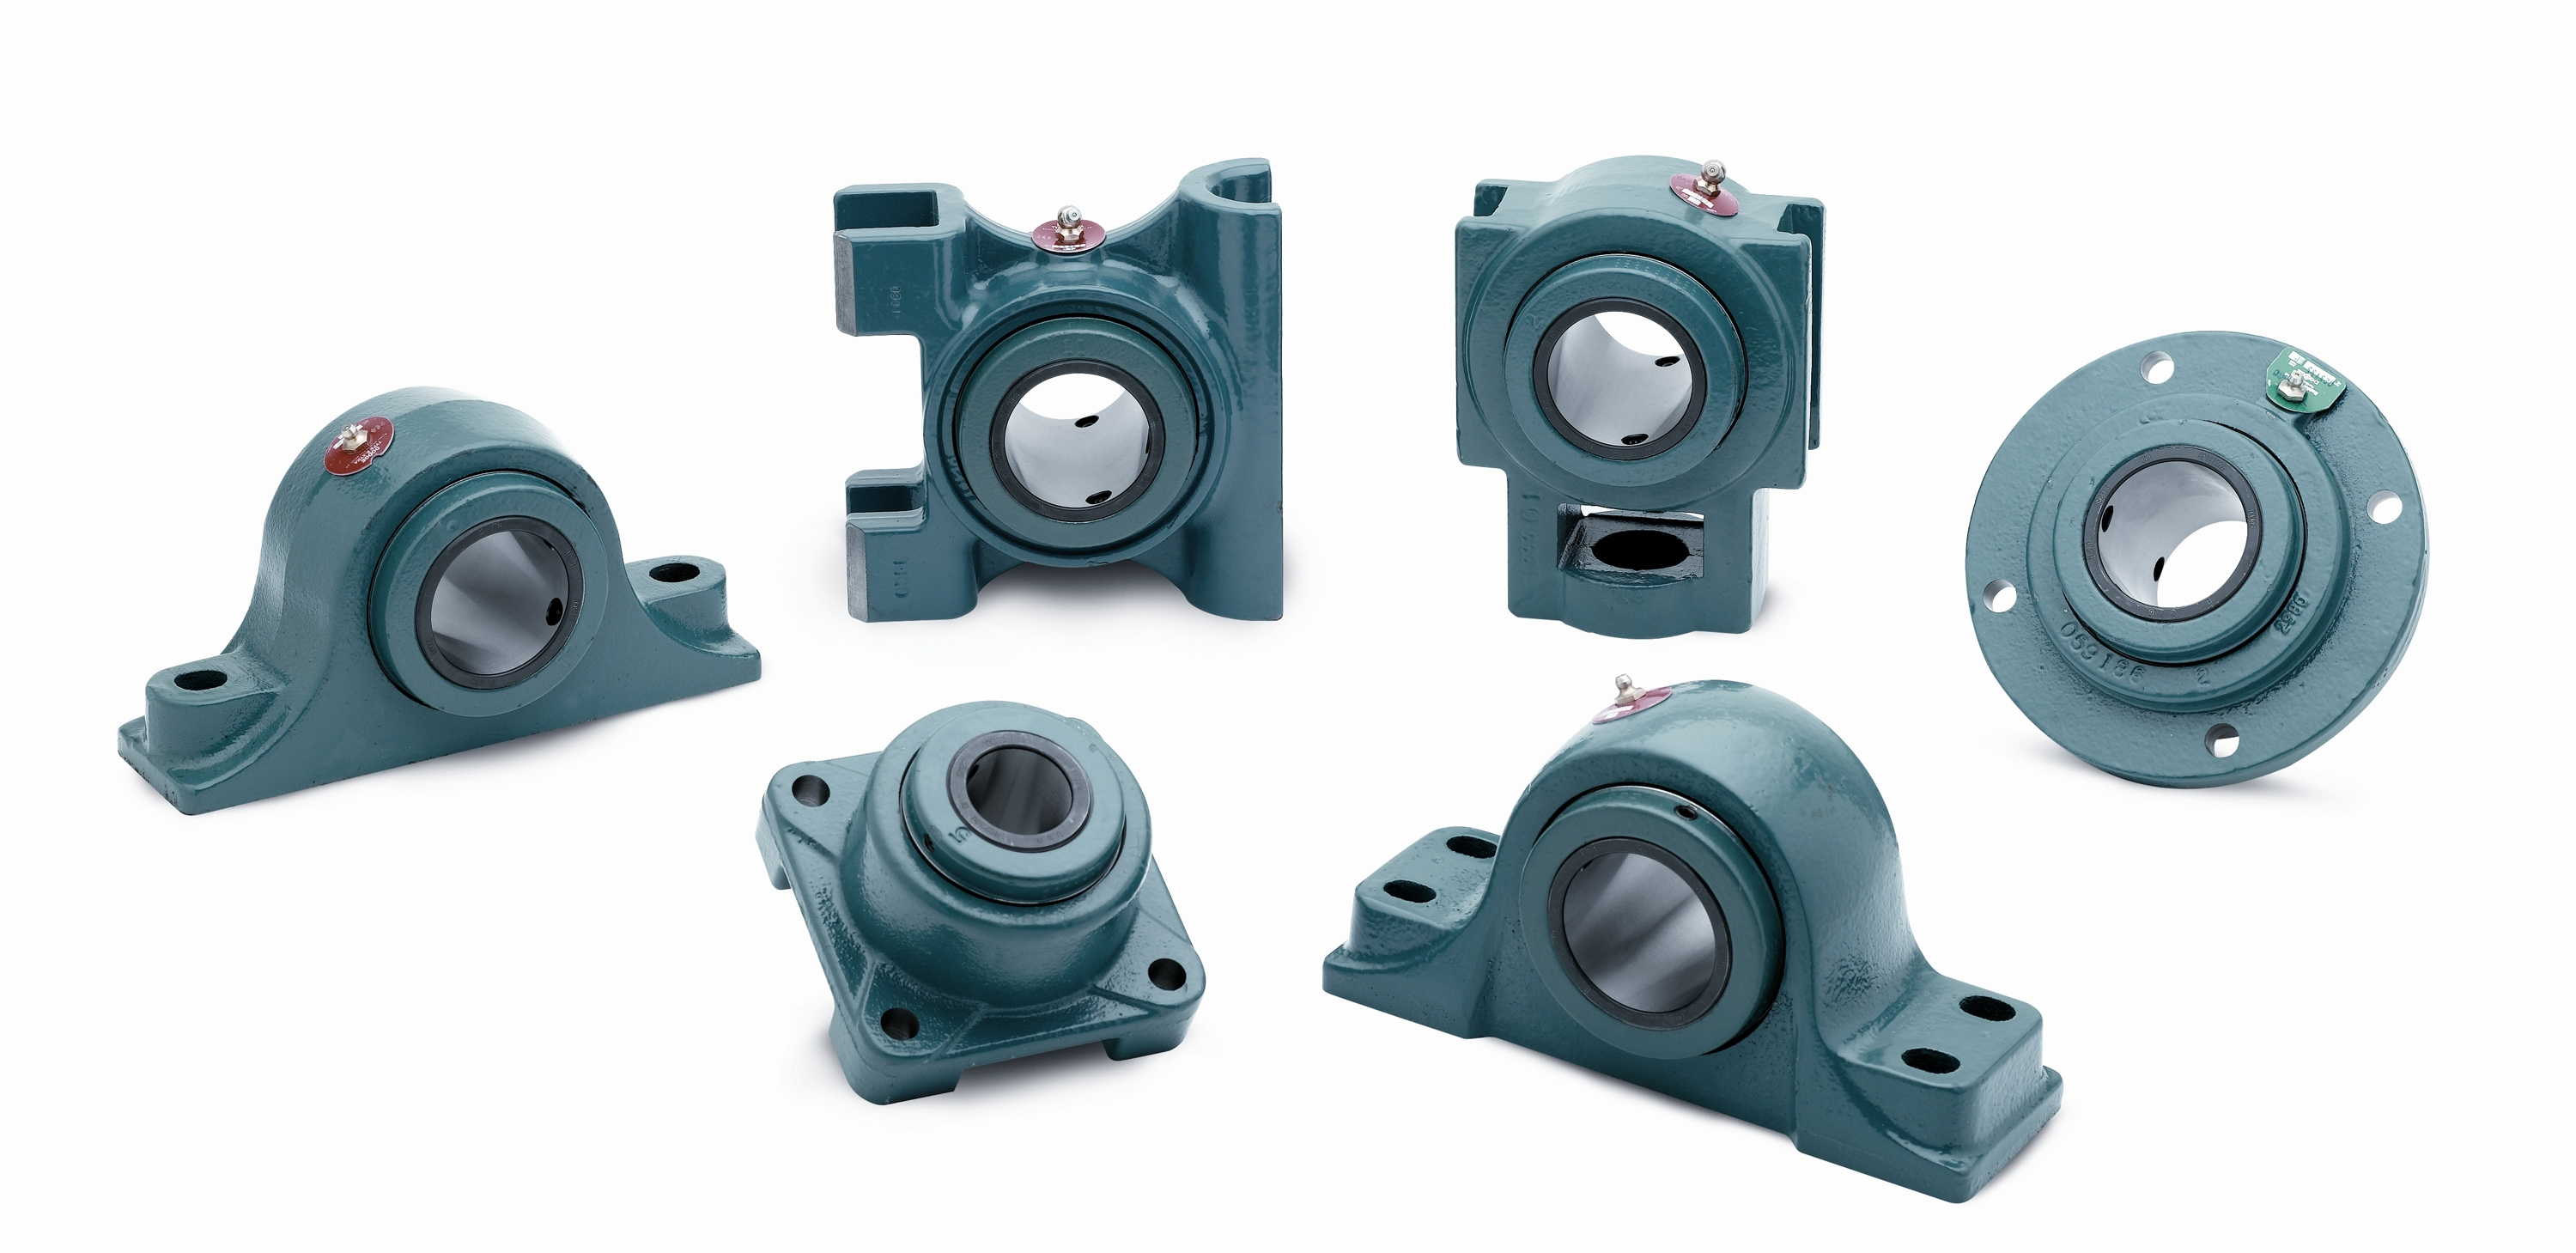 Baldor Boosts Performance Of Favourite Dodge Tapered Roller Bearing